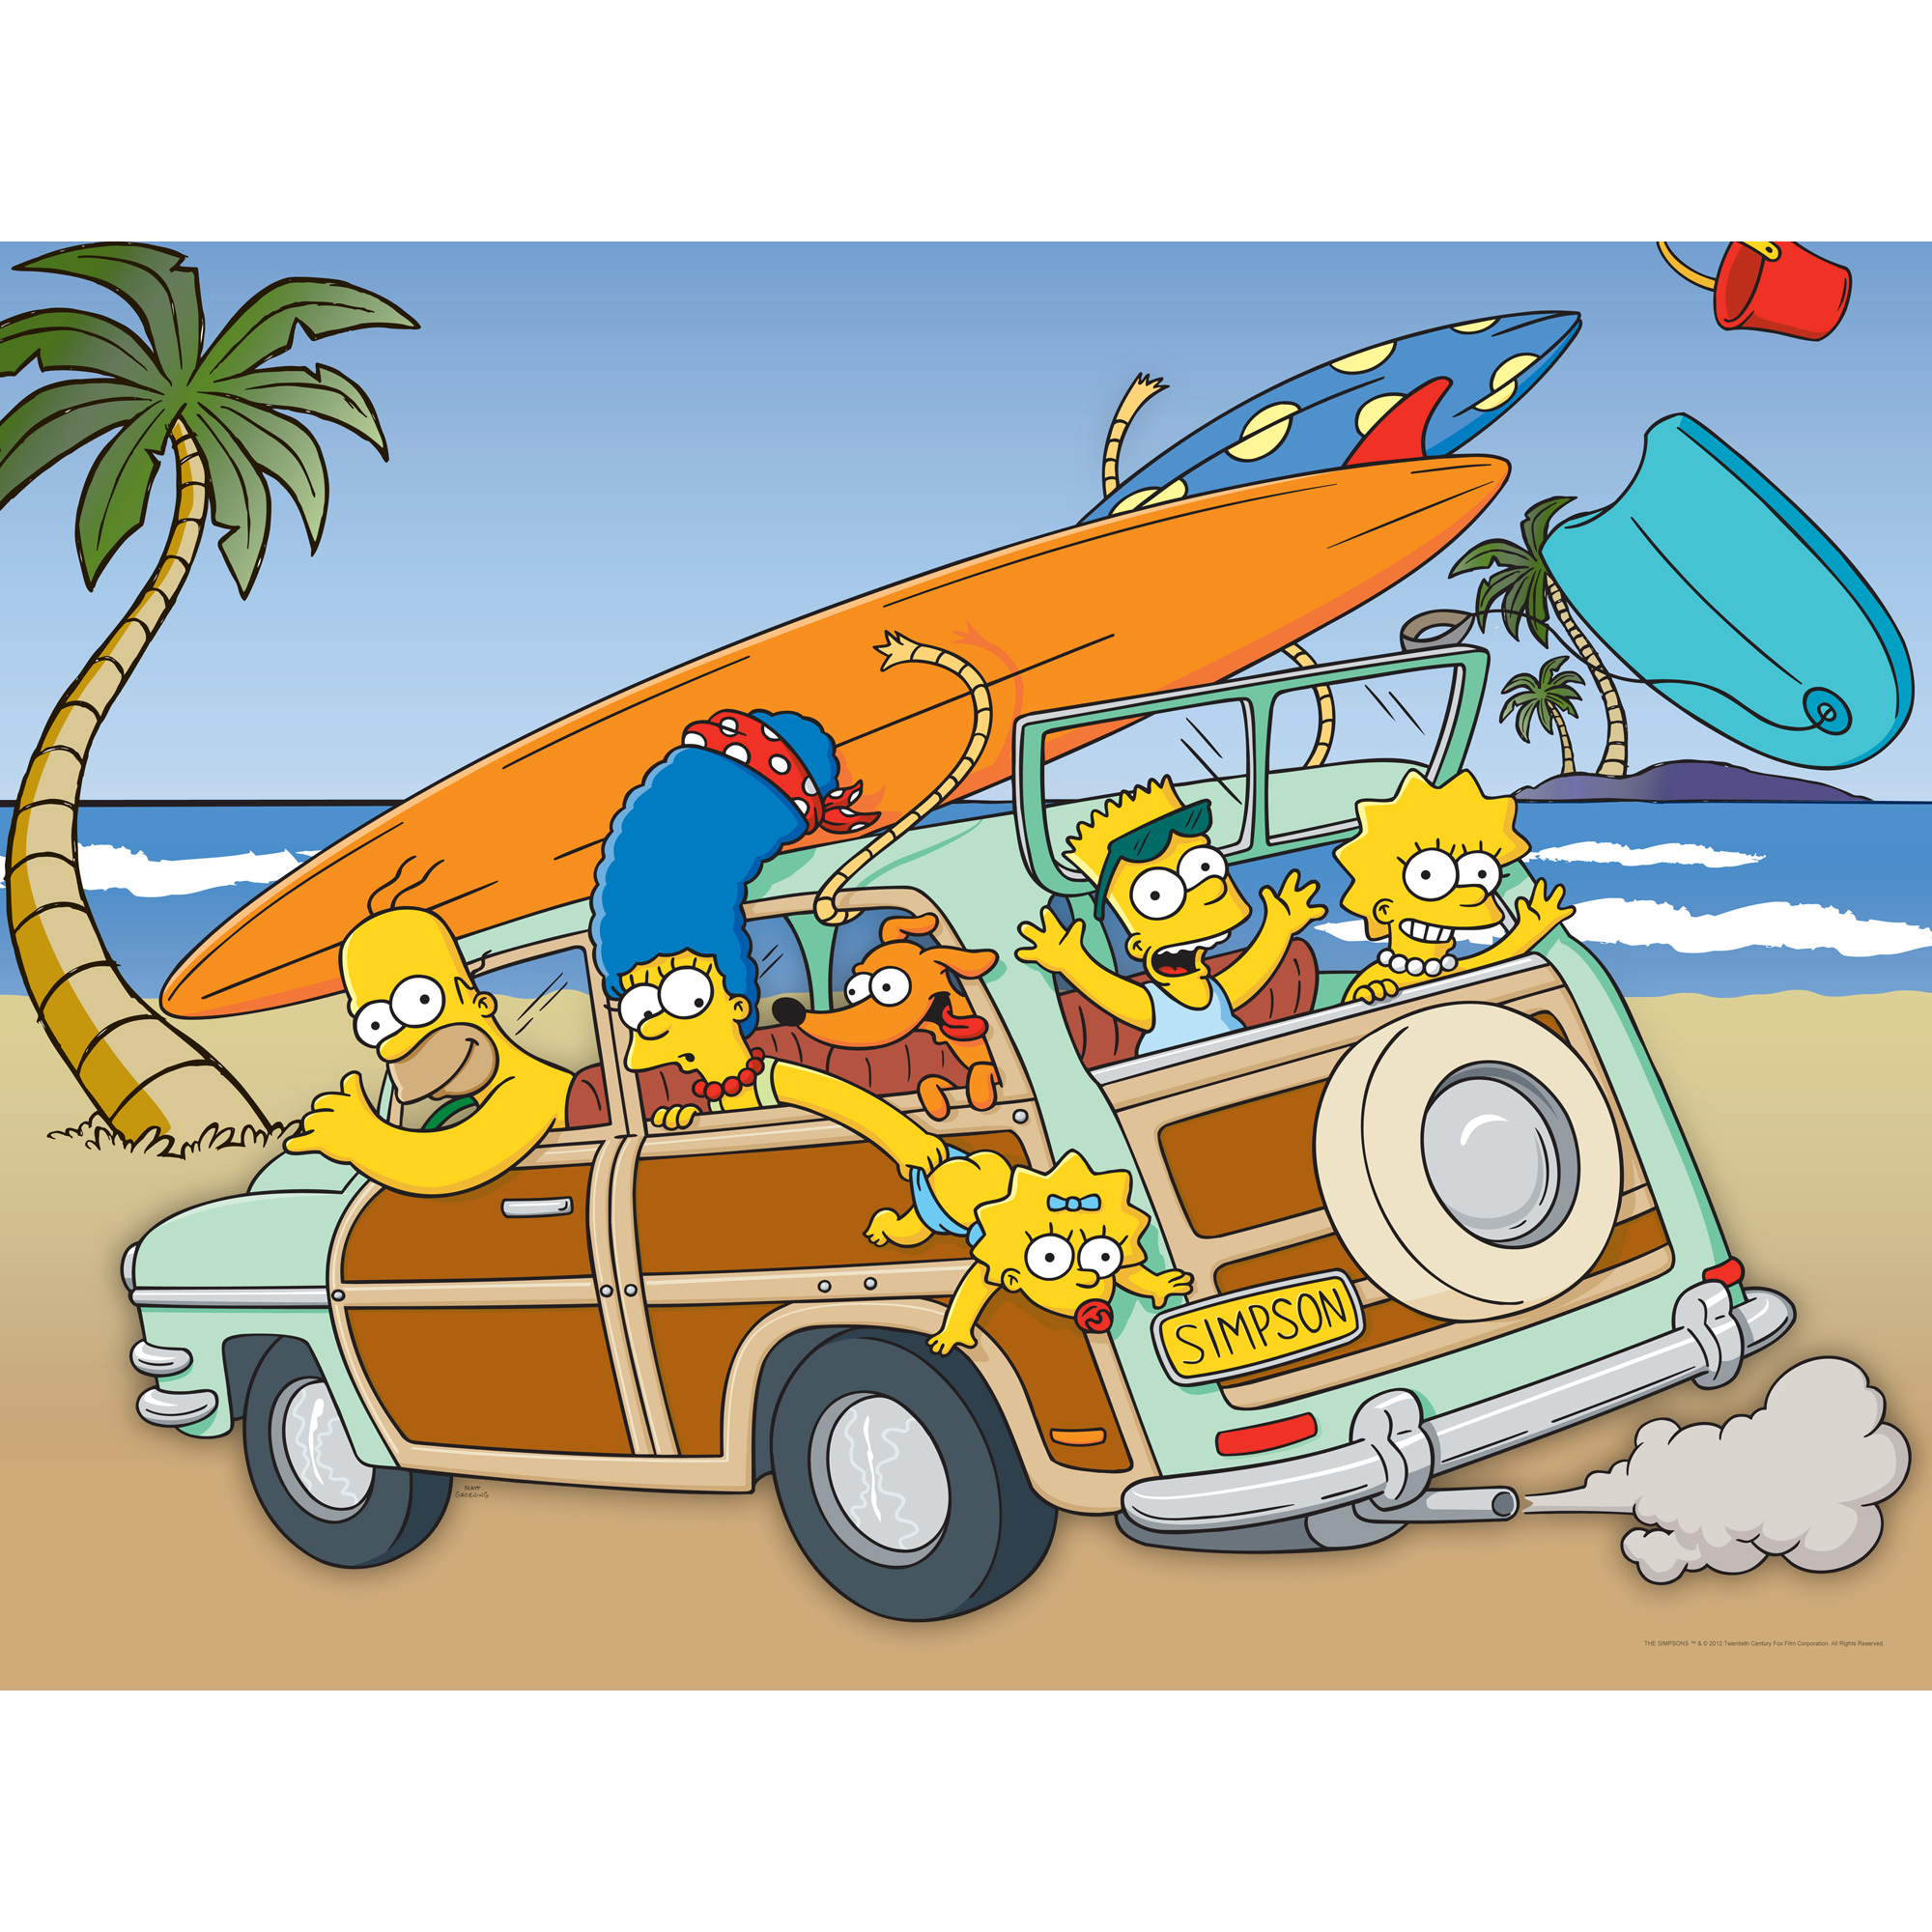 Simpsons On Vacation